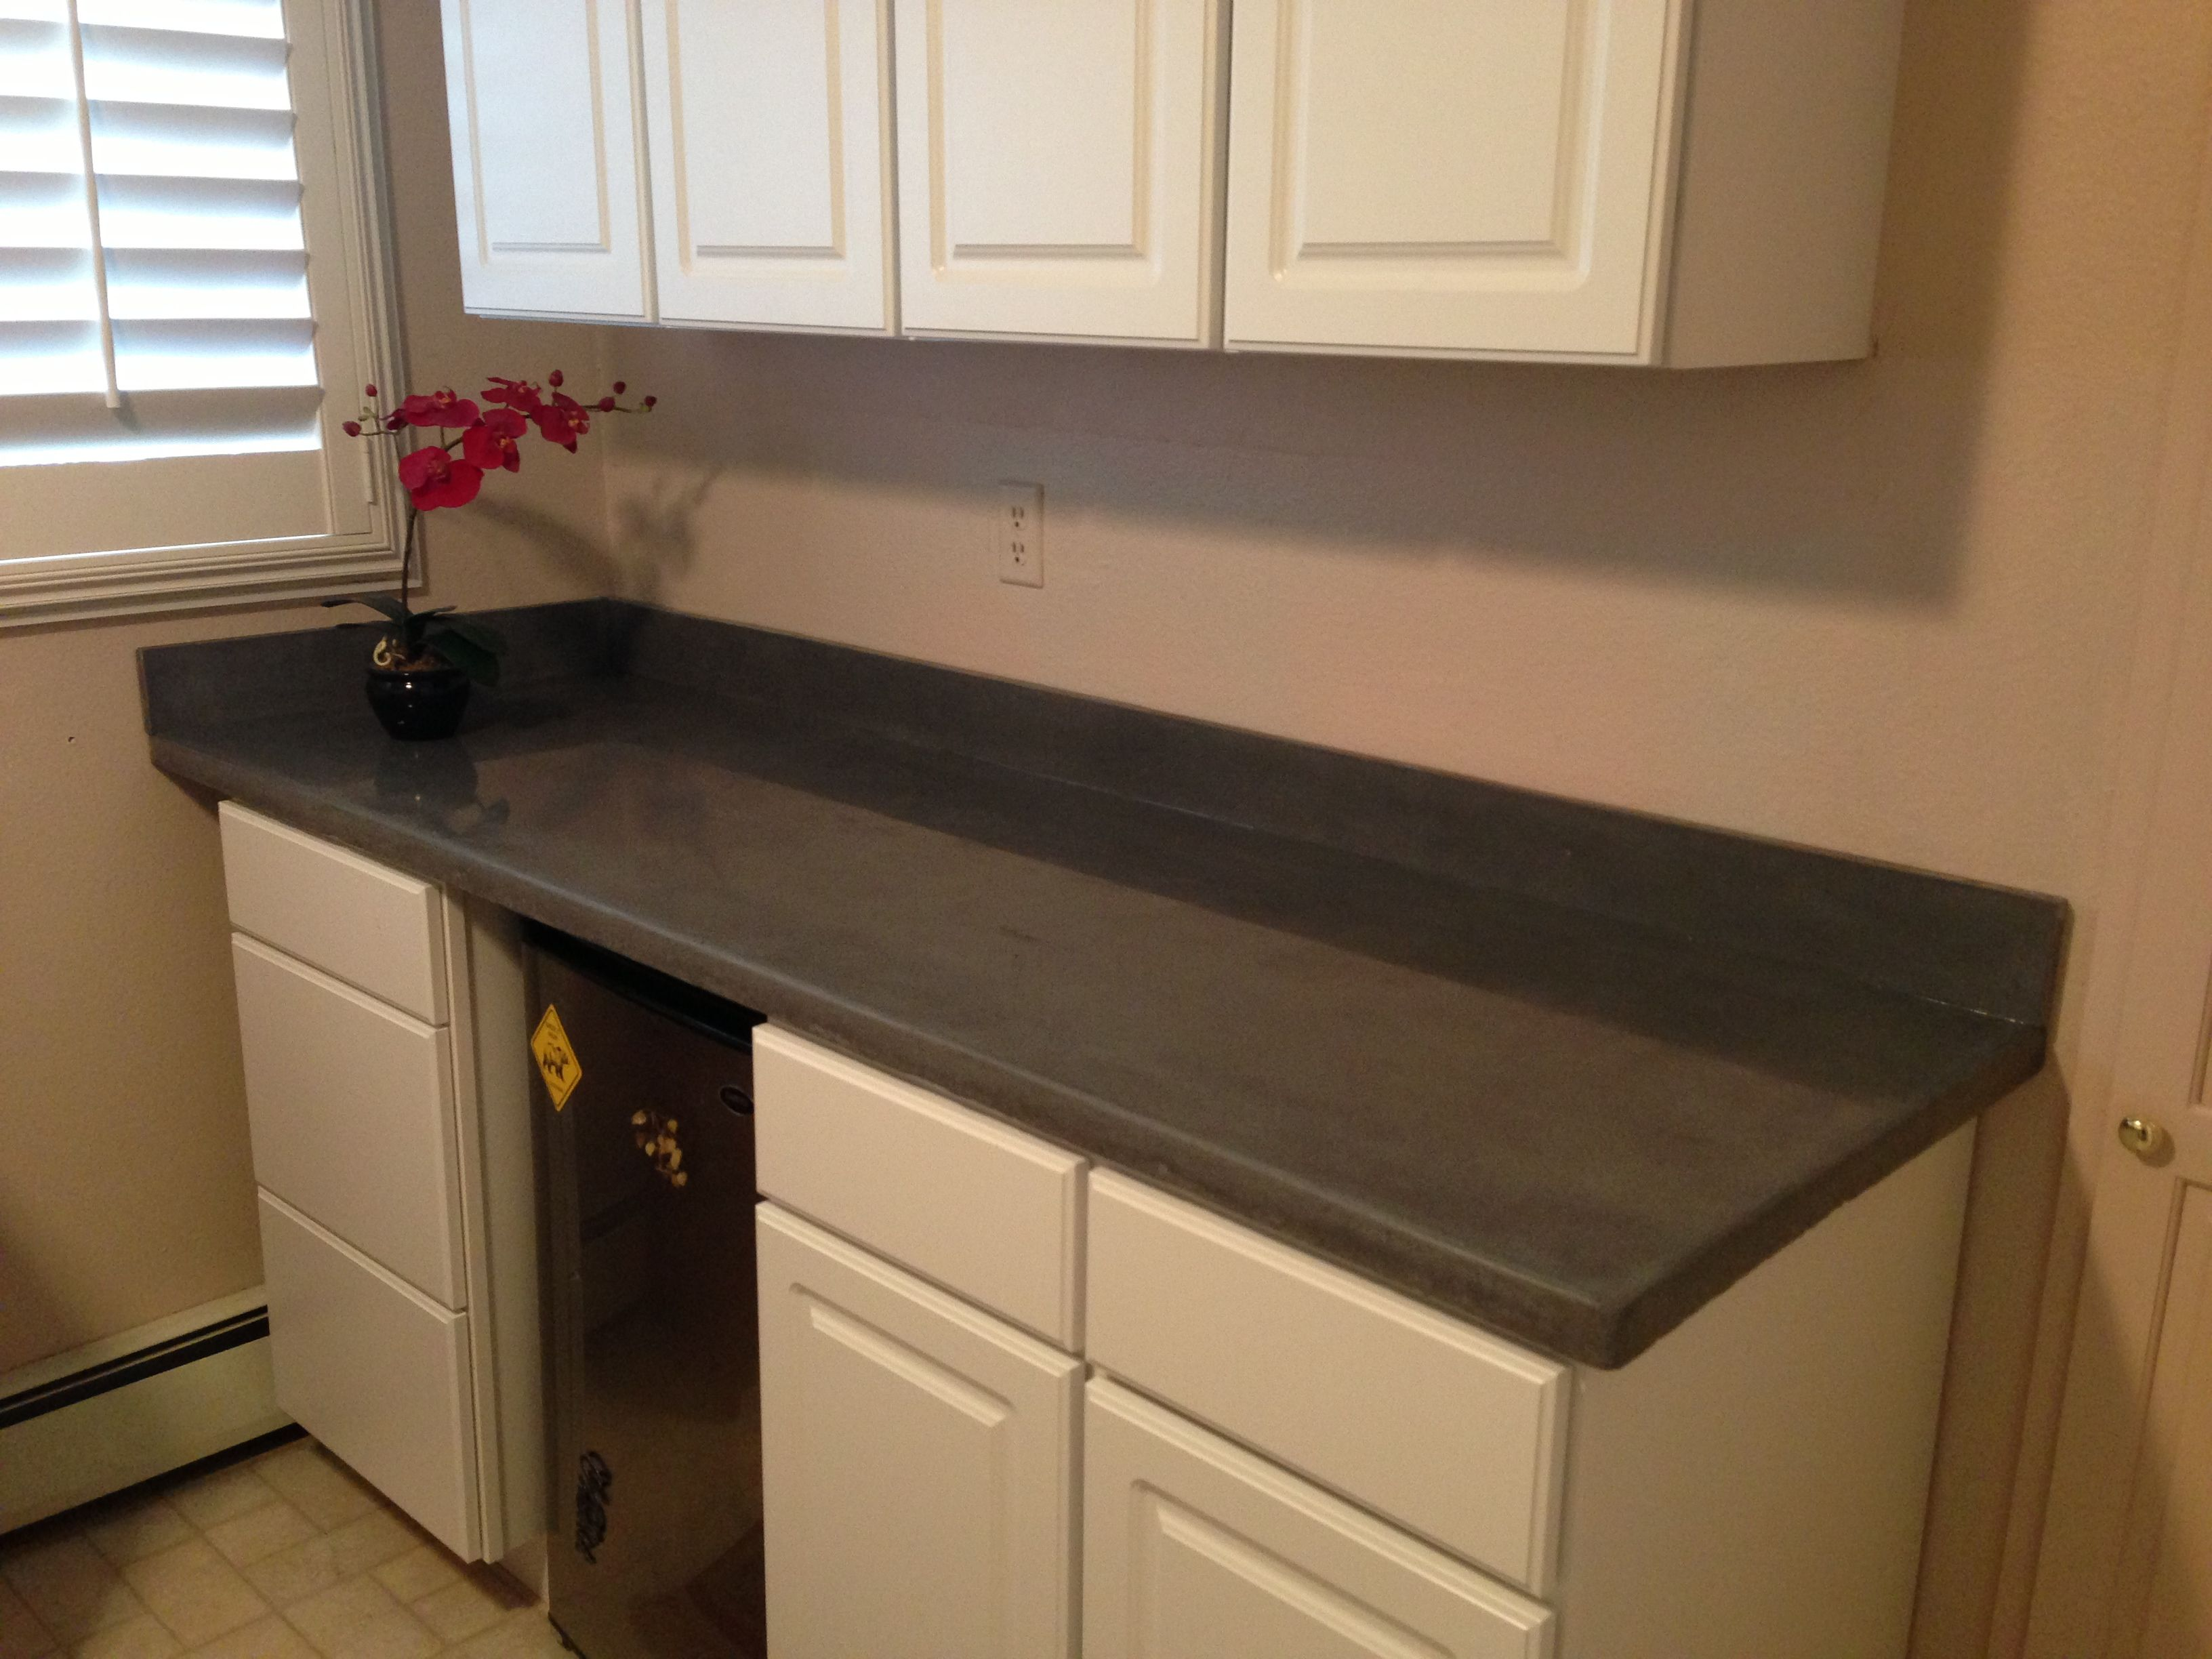 Matching Backsplash To Countertop Custom Dark Grey Concrete Countertop With A Matching 4